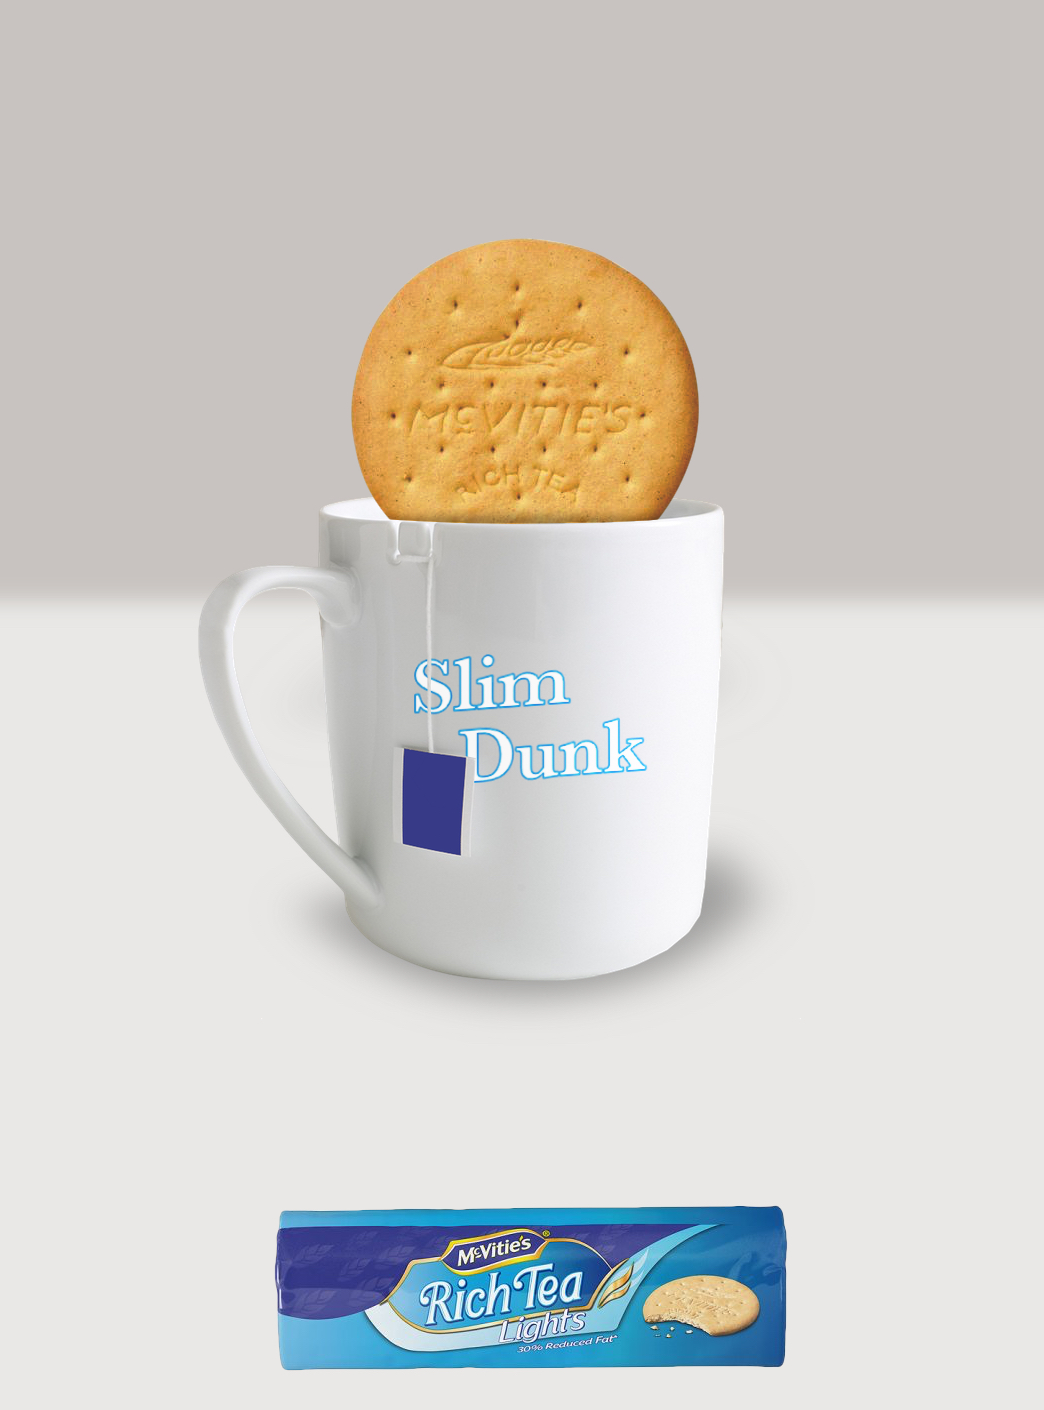 Advertising idea for Rich Tea Light Biscuits - slim dunk